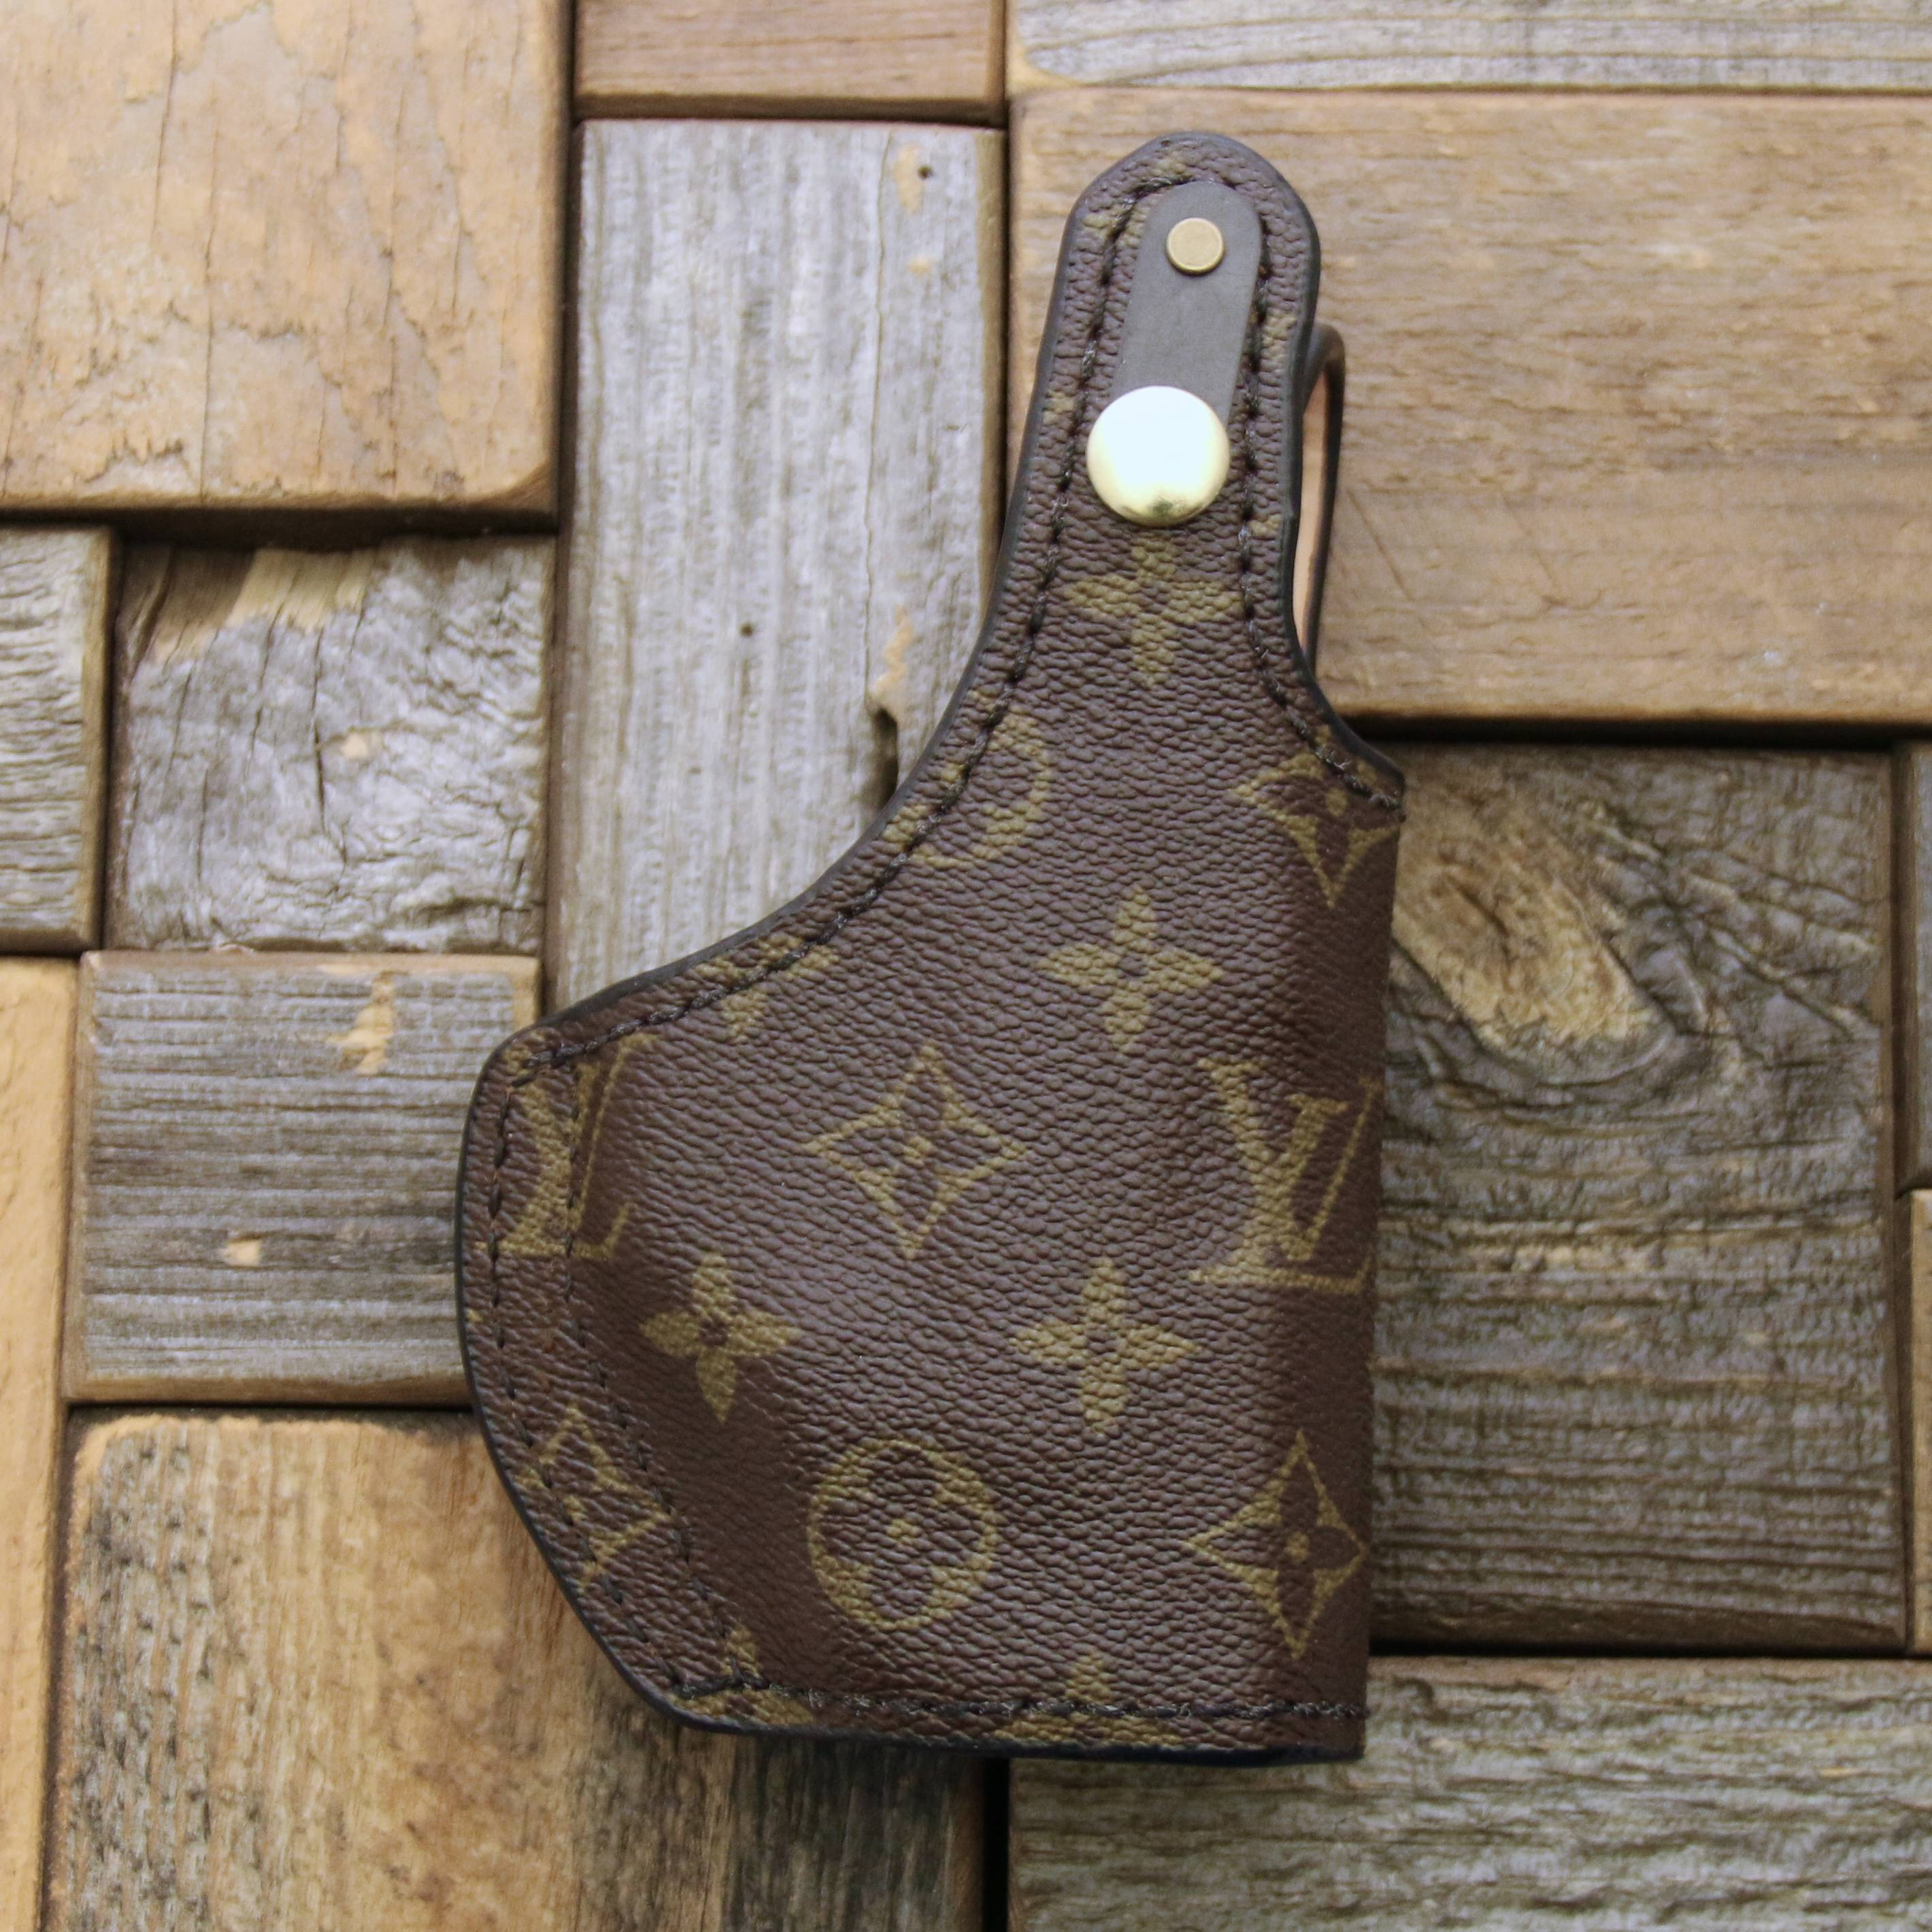 custom Louis Vuitton concealed holster for purse with thumb snap